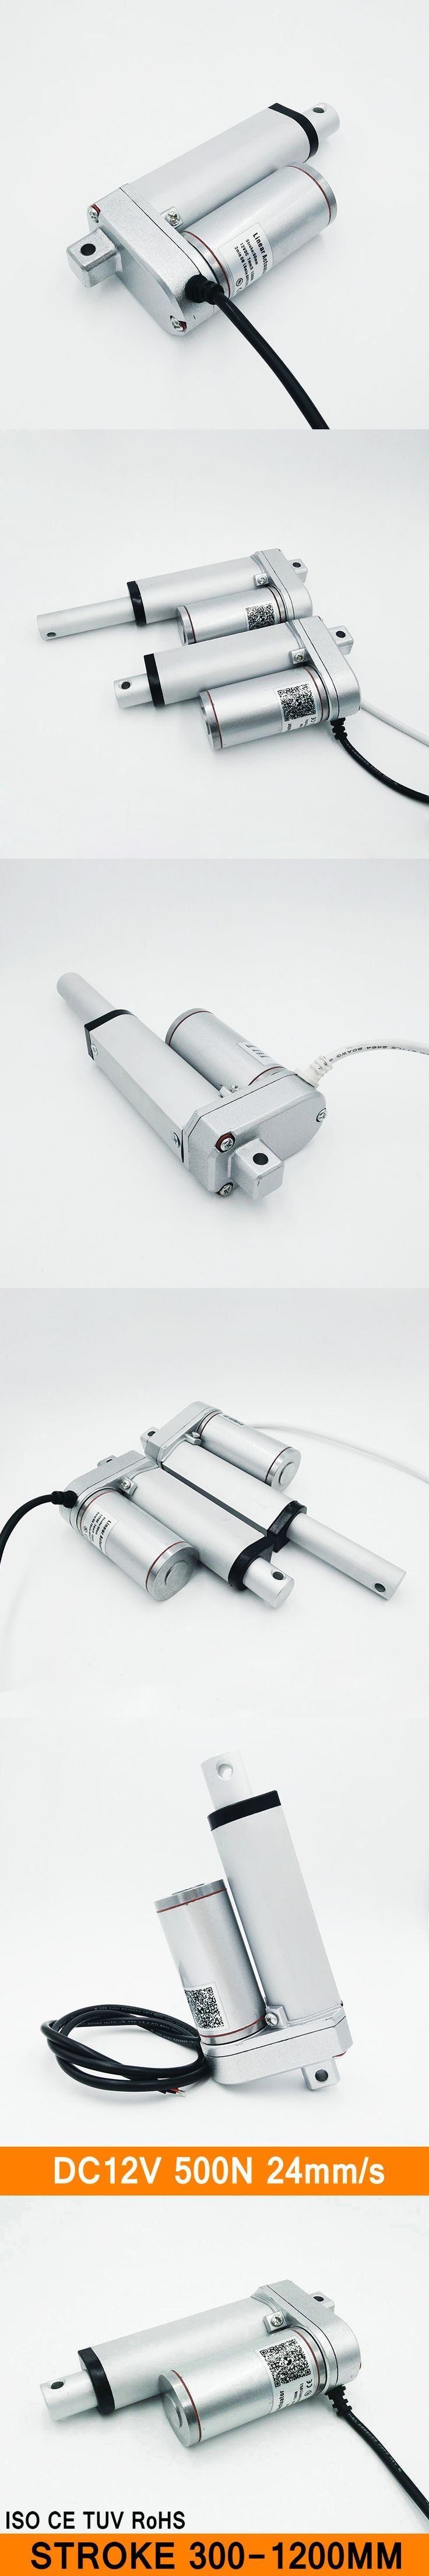 Linear Actuator 12V DC Motor 500N 24mm/s Stroke 300-1200mm Linear Electric Motor IP54 Aluminum Alloy Waterproof CE RoHS ISO